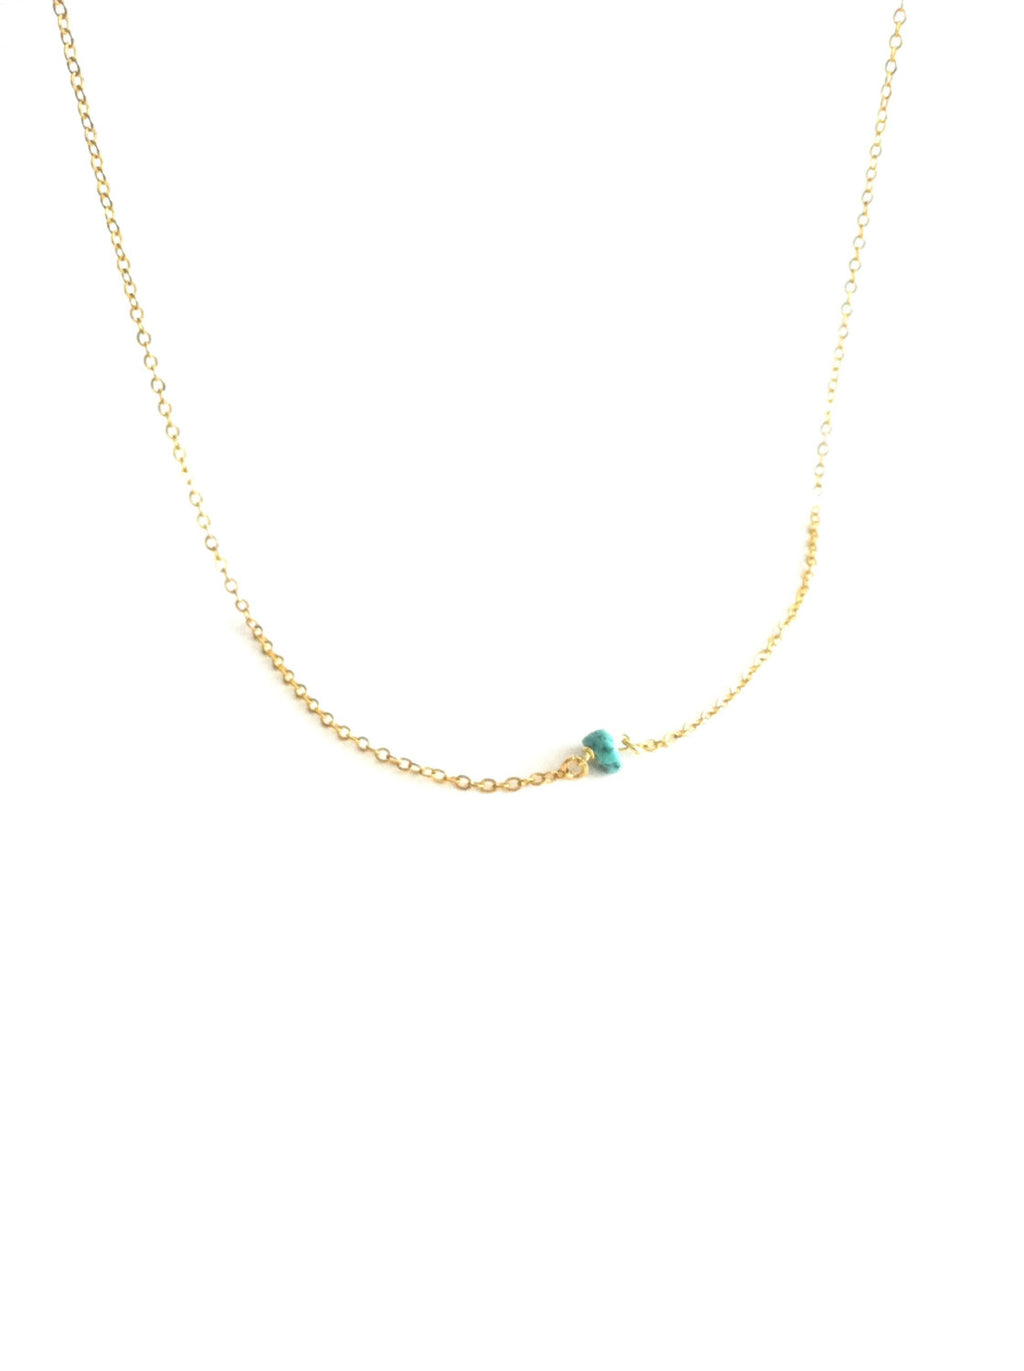 Tiny Dainty Turquoise Thin Chain Necklace | IB Jewelry